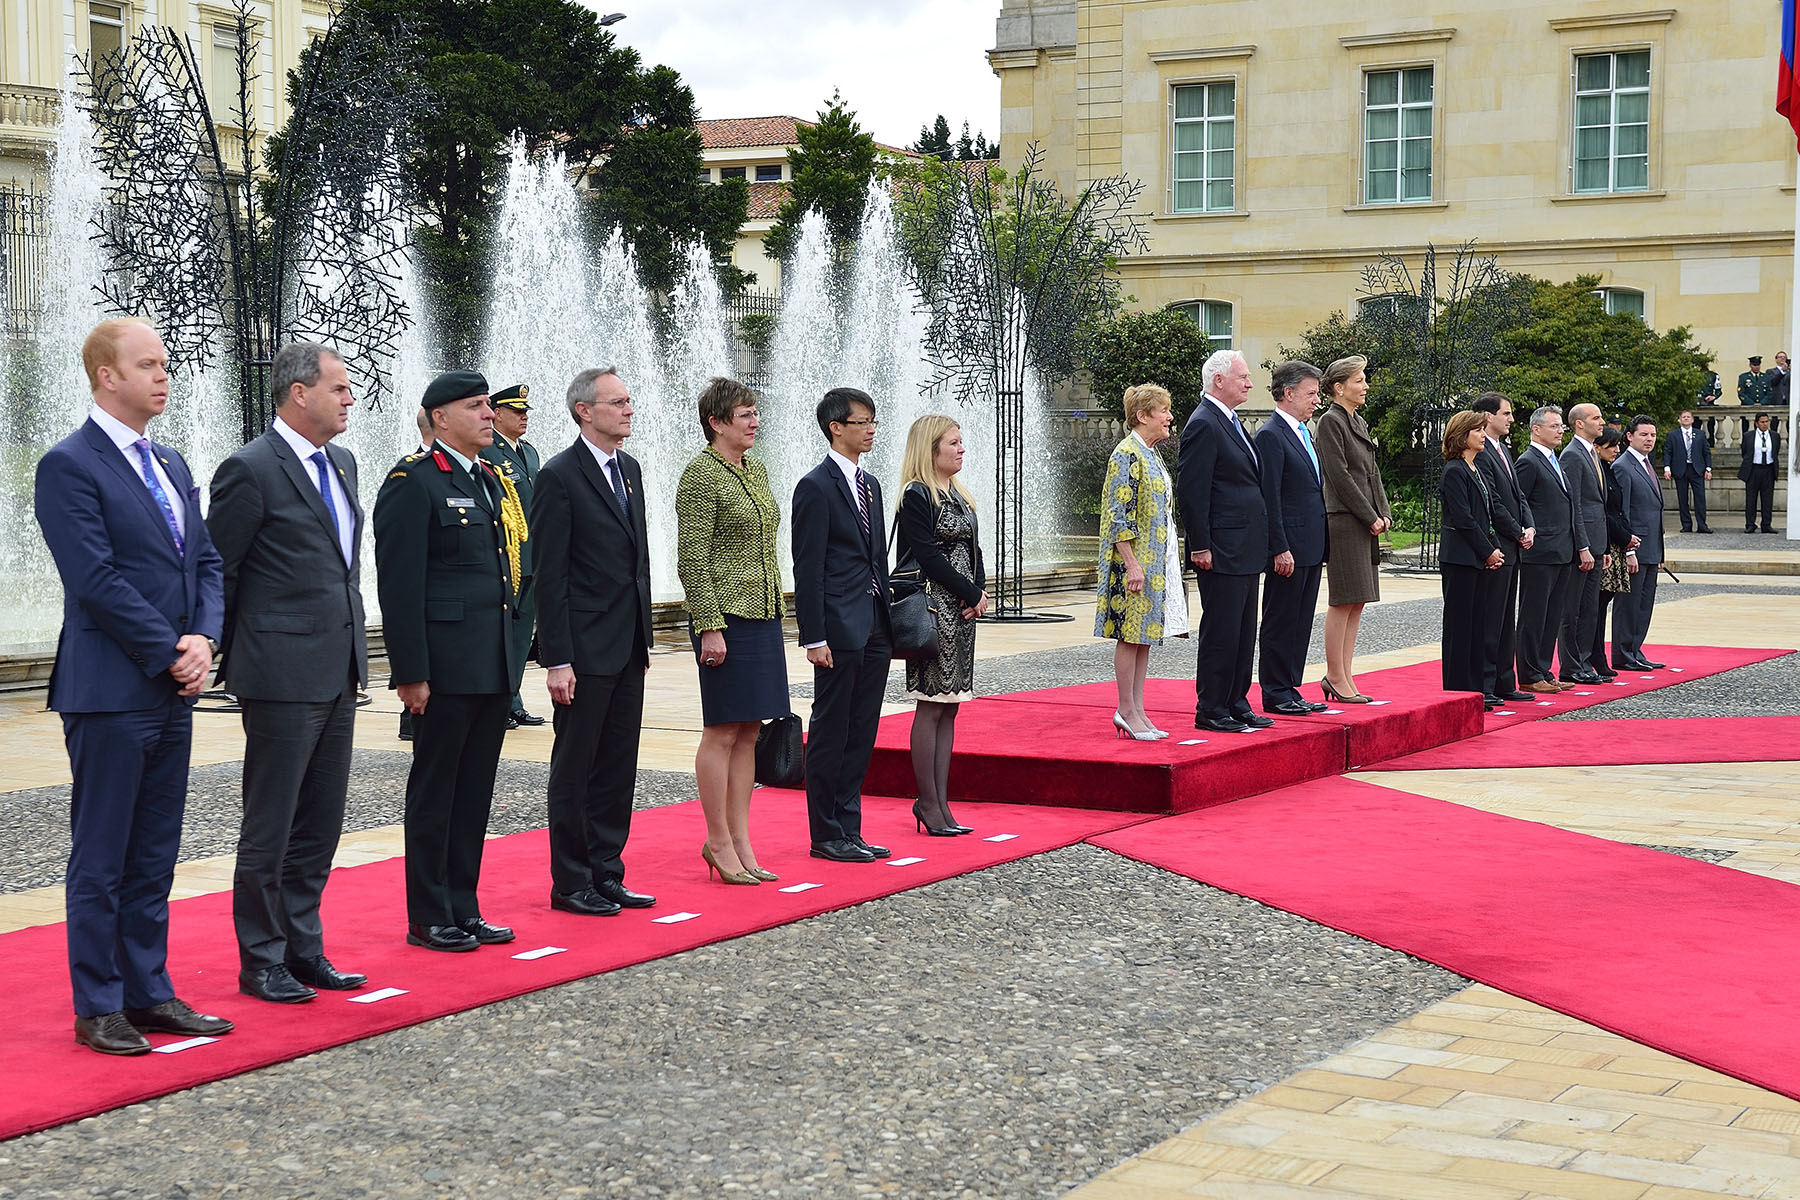 Their Excellencies were officially welcomed by His Excellency Juan Manuel Santos Calderón, President of the Republic of Colombia, and by the First Lady María Clemencia Rodríguez Múnera.